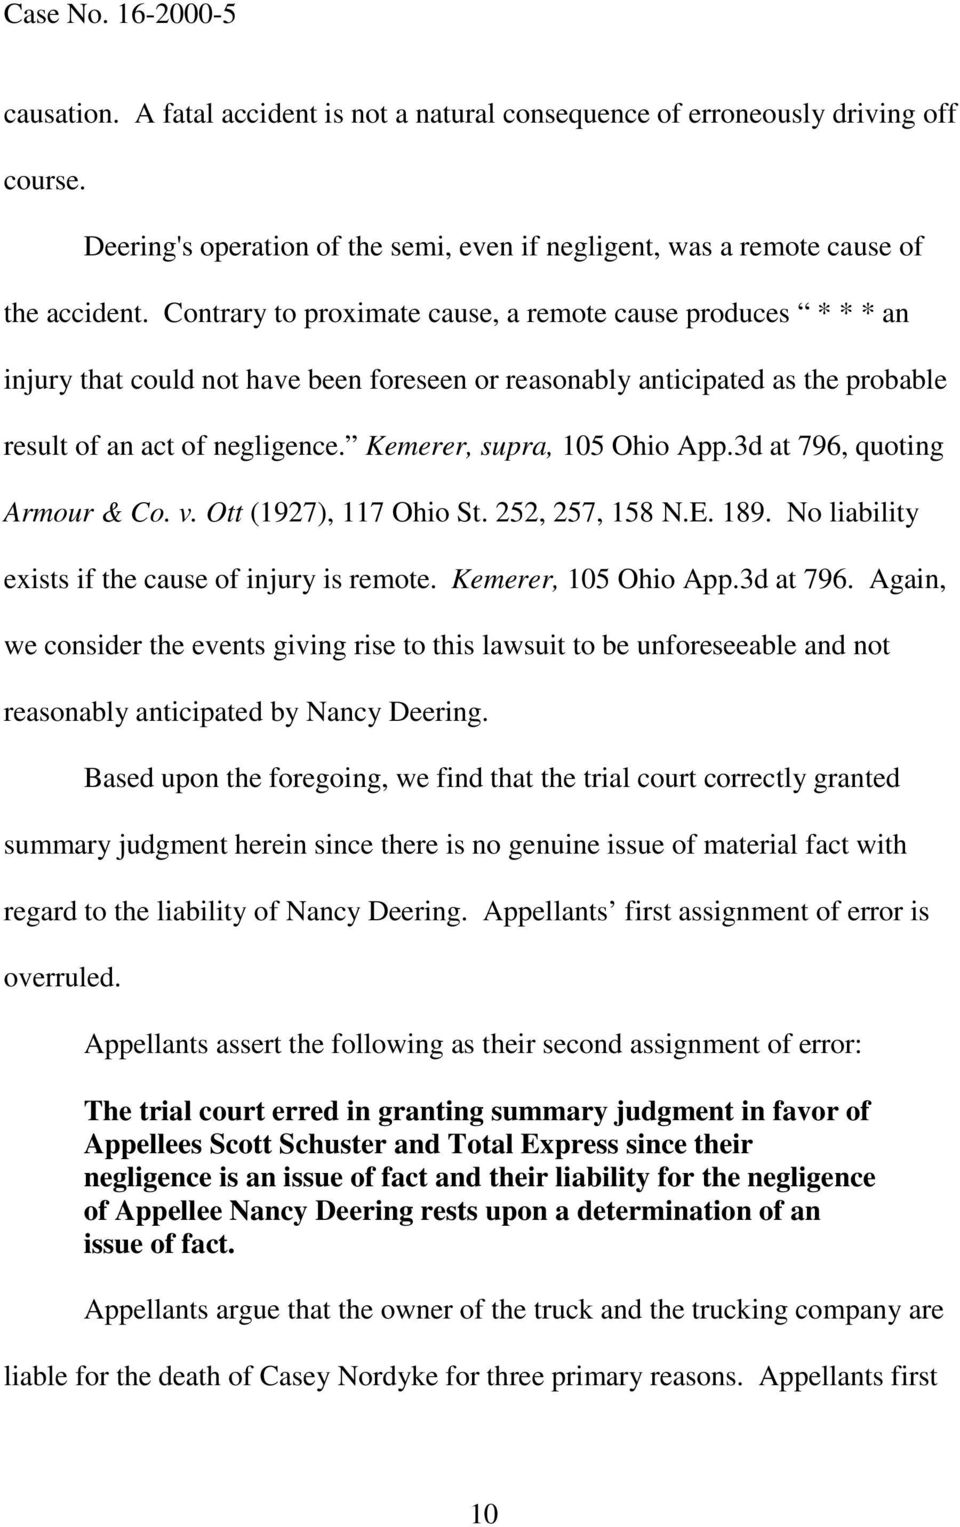 Kemerer, supra, 105 Ohio App.3d at 796, quoting Armour & Co. v. Ott (1927), 117 Ohio St. 252, 257, 158 N.E. 189. No liability exists if the cause of injury is remote. Kemerer, 105 Ohio App.3d at 796. Again, we consider the events giving rise to this lawsuit to be unforeseeable and not reasonably anticipated by Nancy Deering.